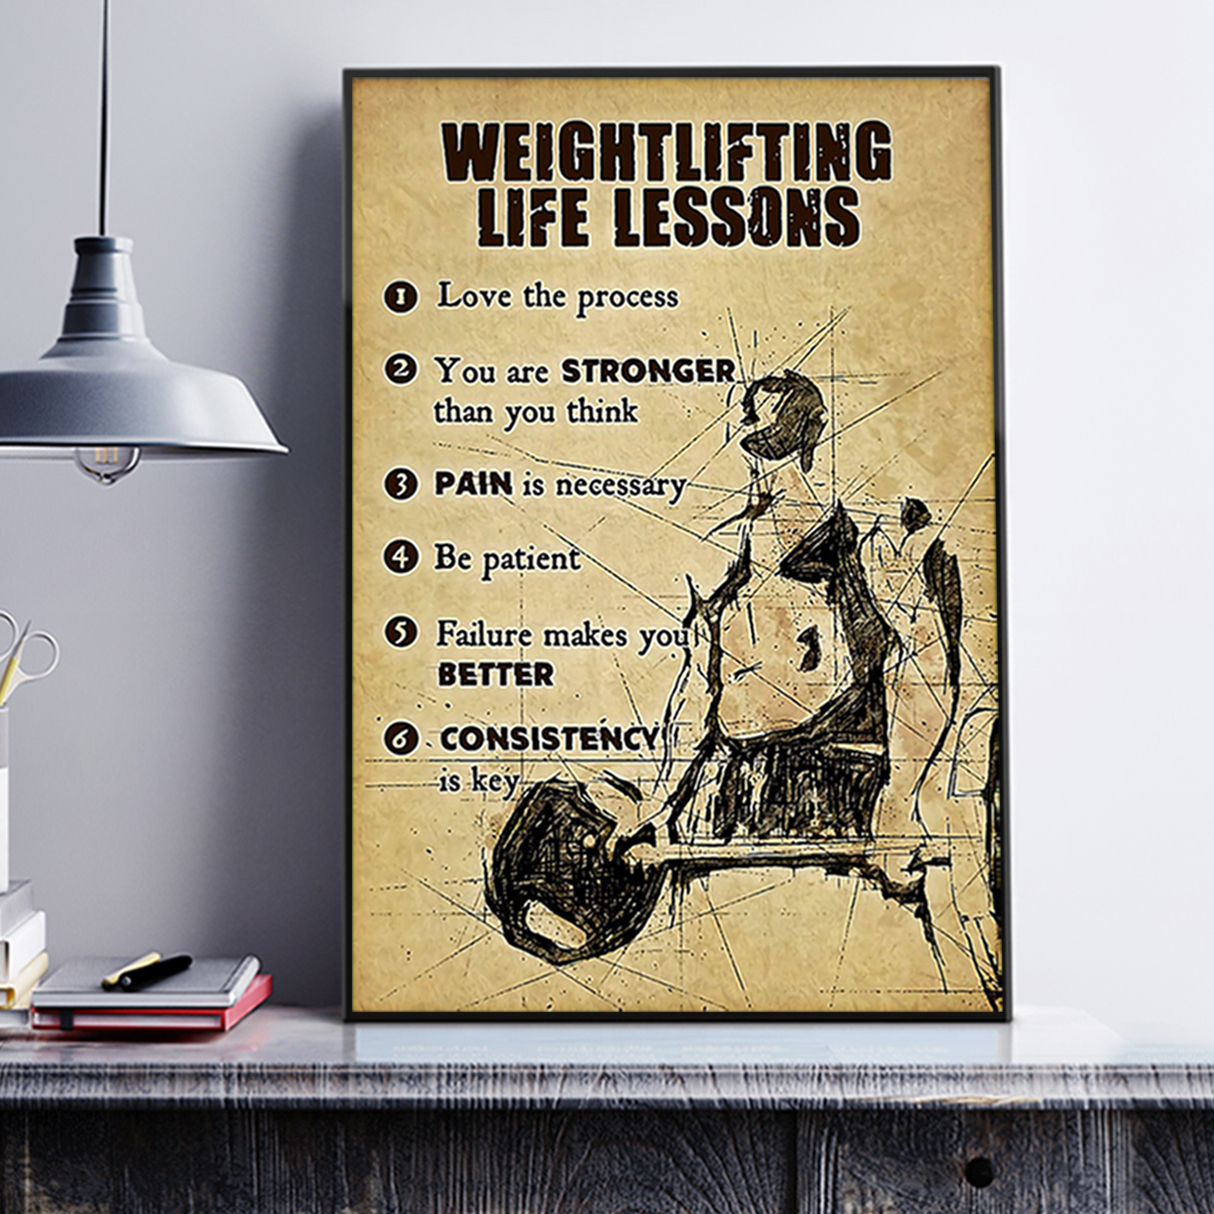 Fitness weightlifting life lessons poster A2